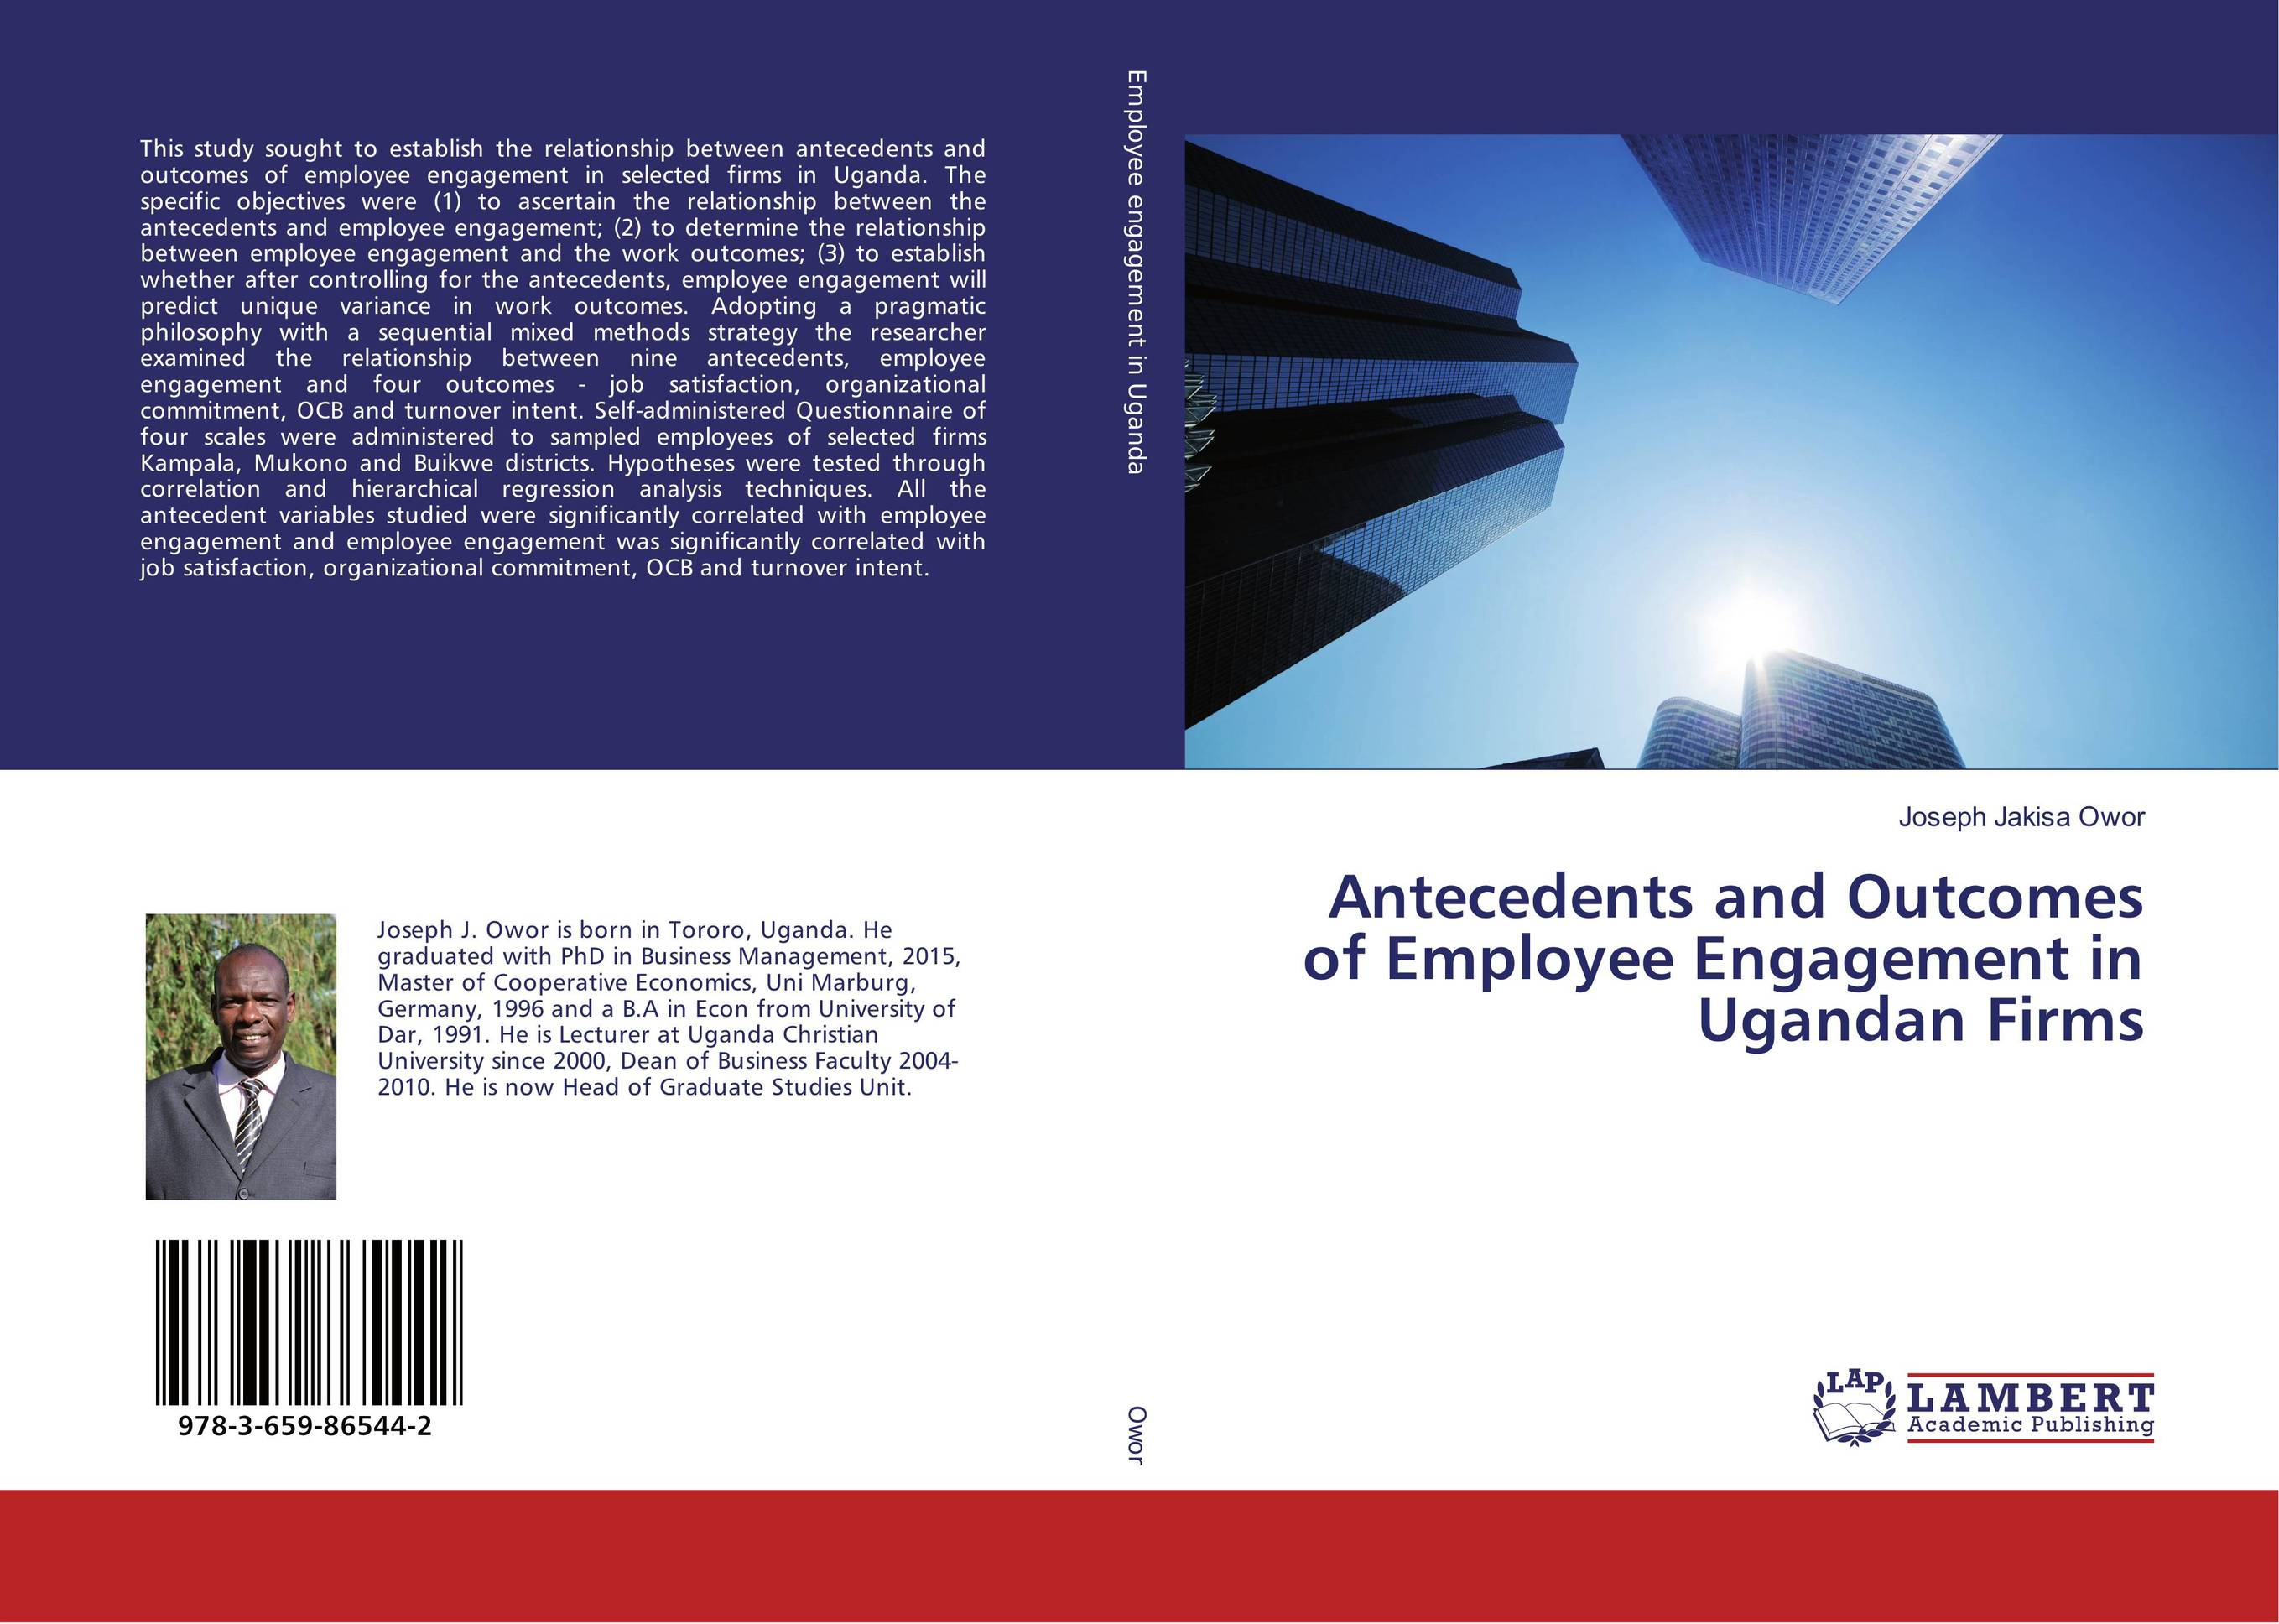 Antecedents and Outcomes of Employee Engagement in Ugandan Firms the impact of work engagement on frontline employees' outcomes